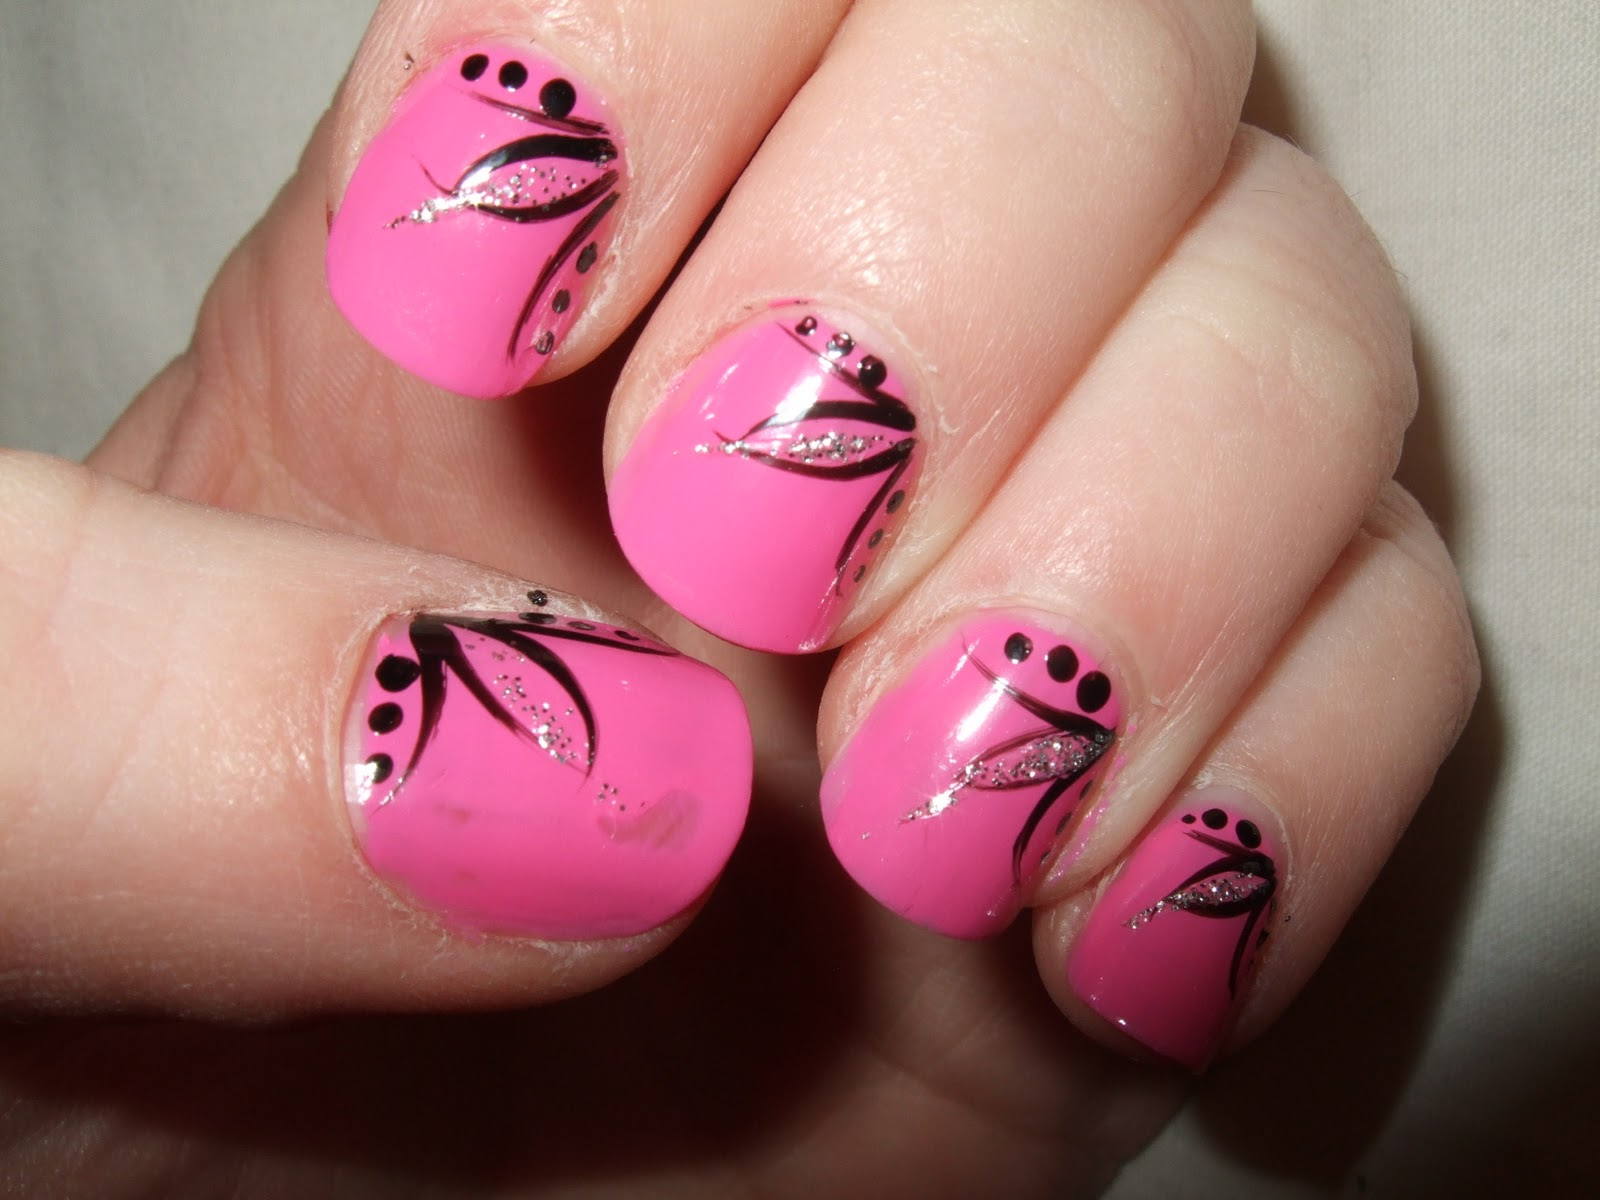 Nail Art Wallpaper Wallpapersafari